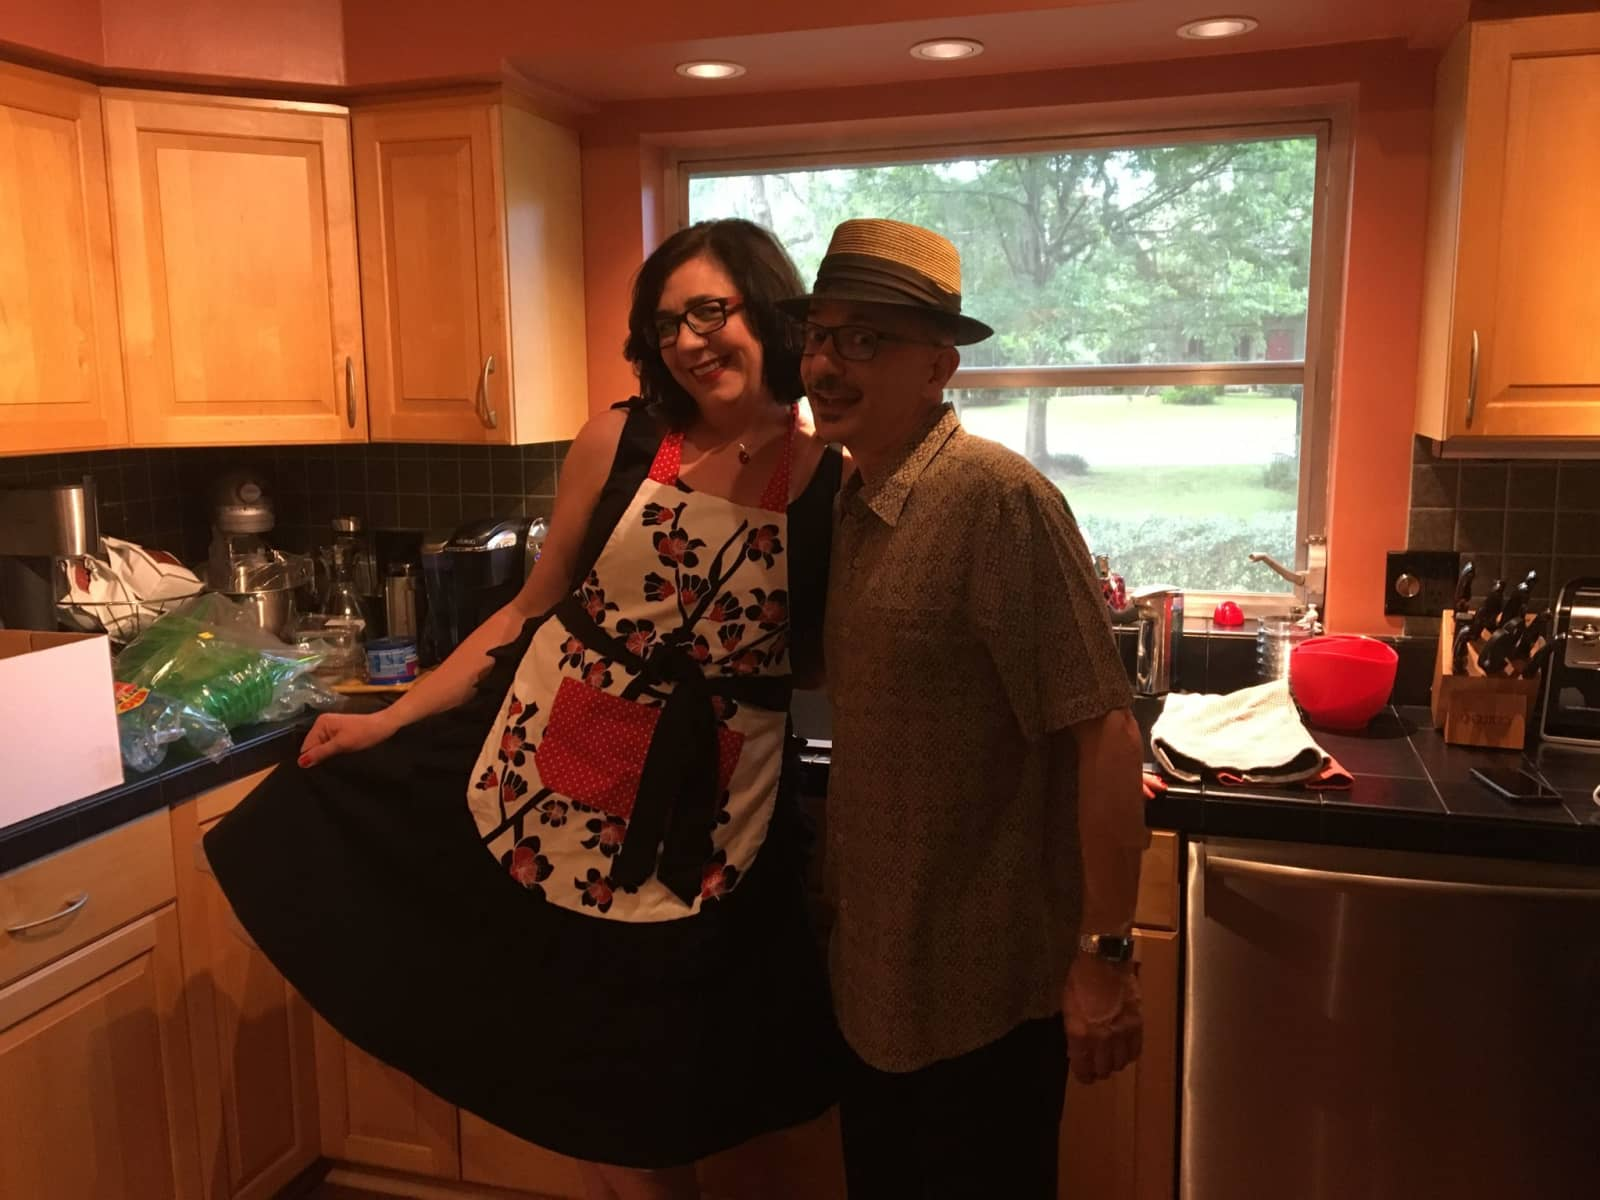 Lori & Nick from Gainesville, Florida, United States